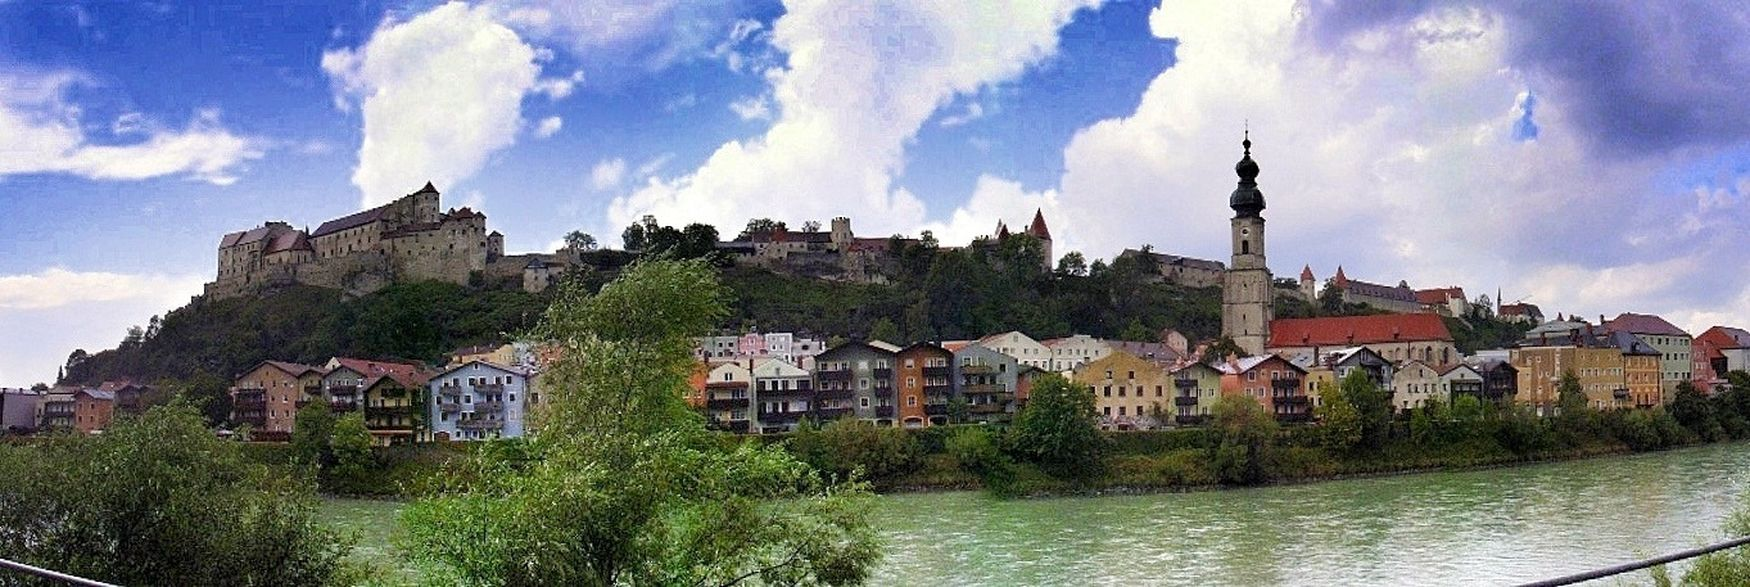 Taking Photos to the city of Burghausen Altötting in Germany